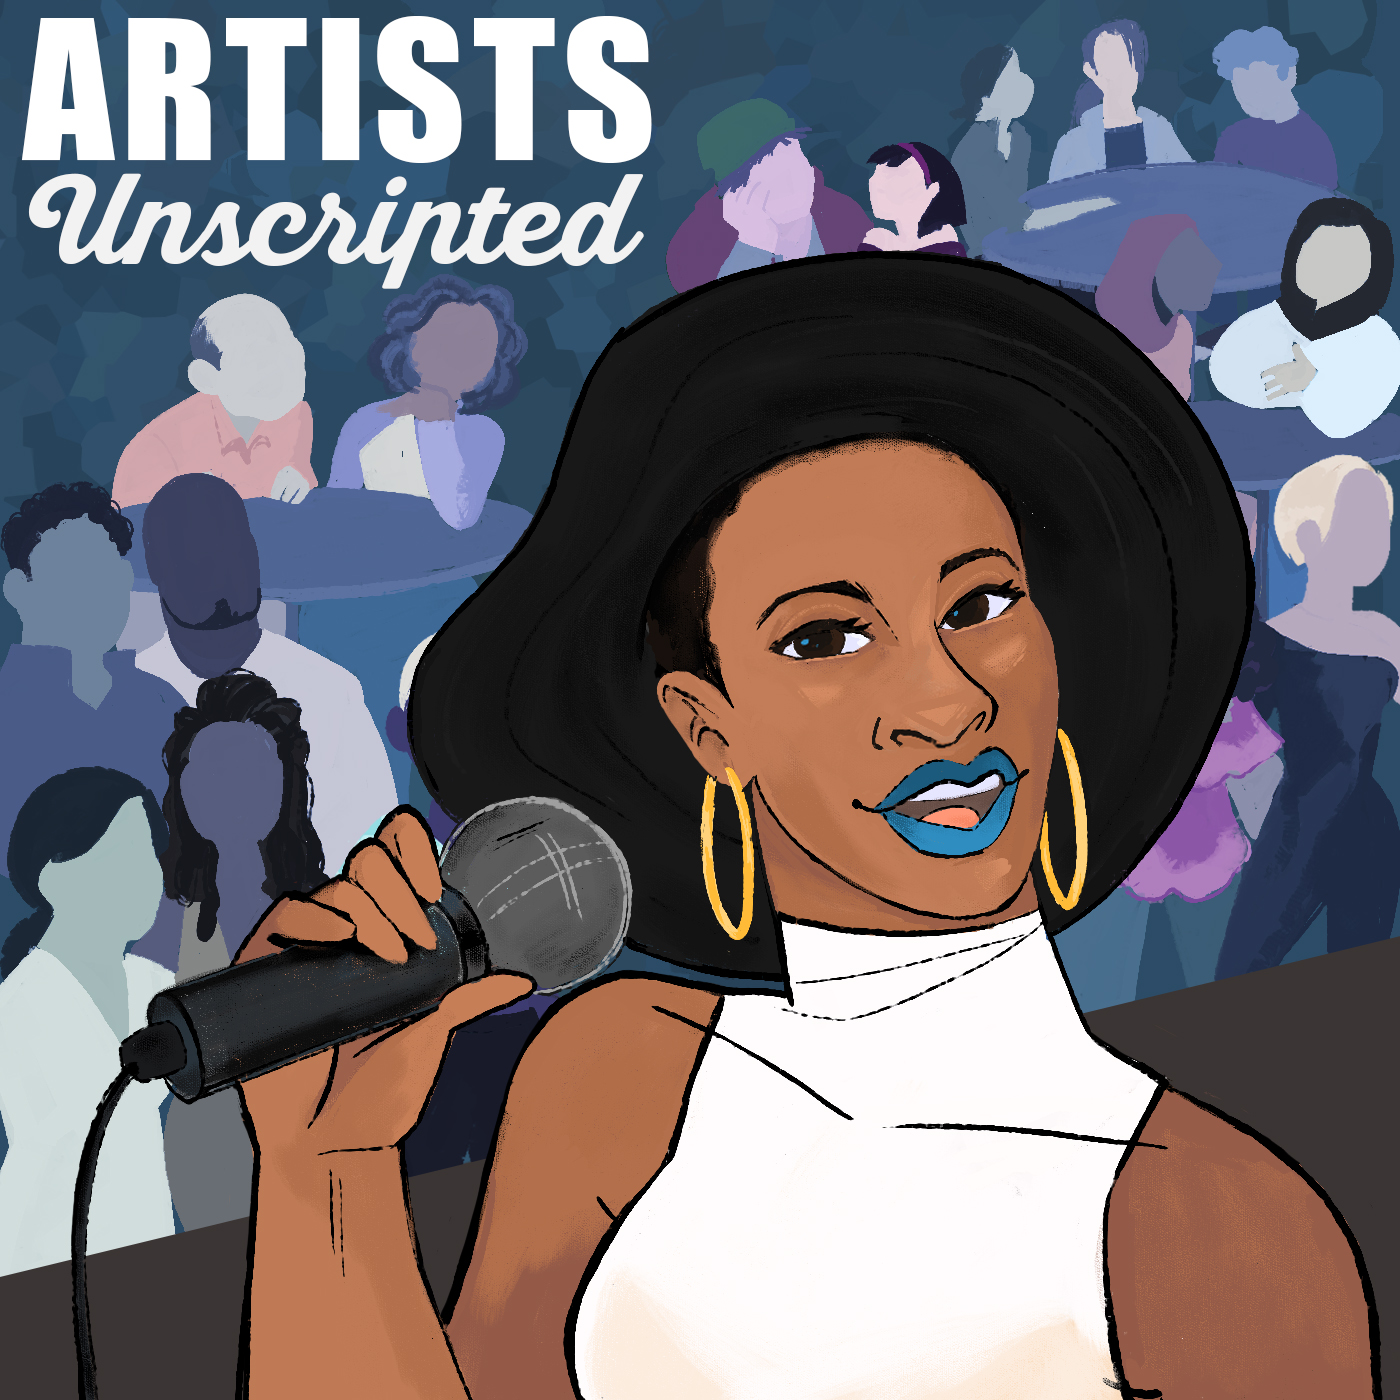 Artists Unscripted